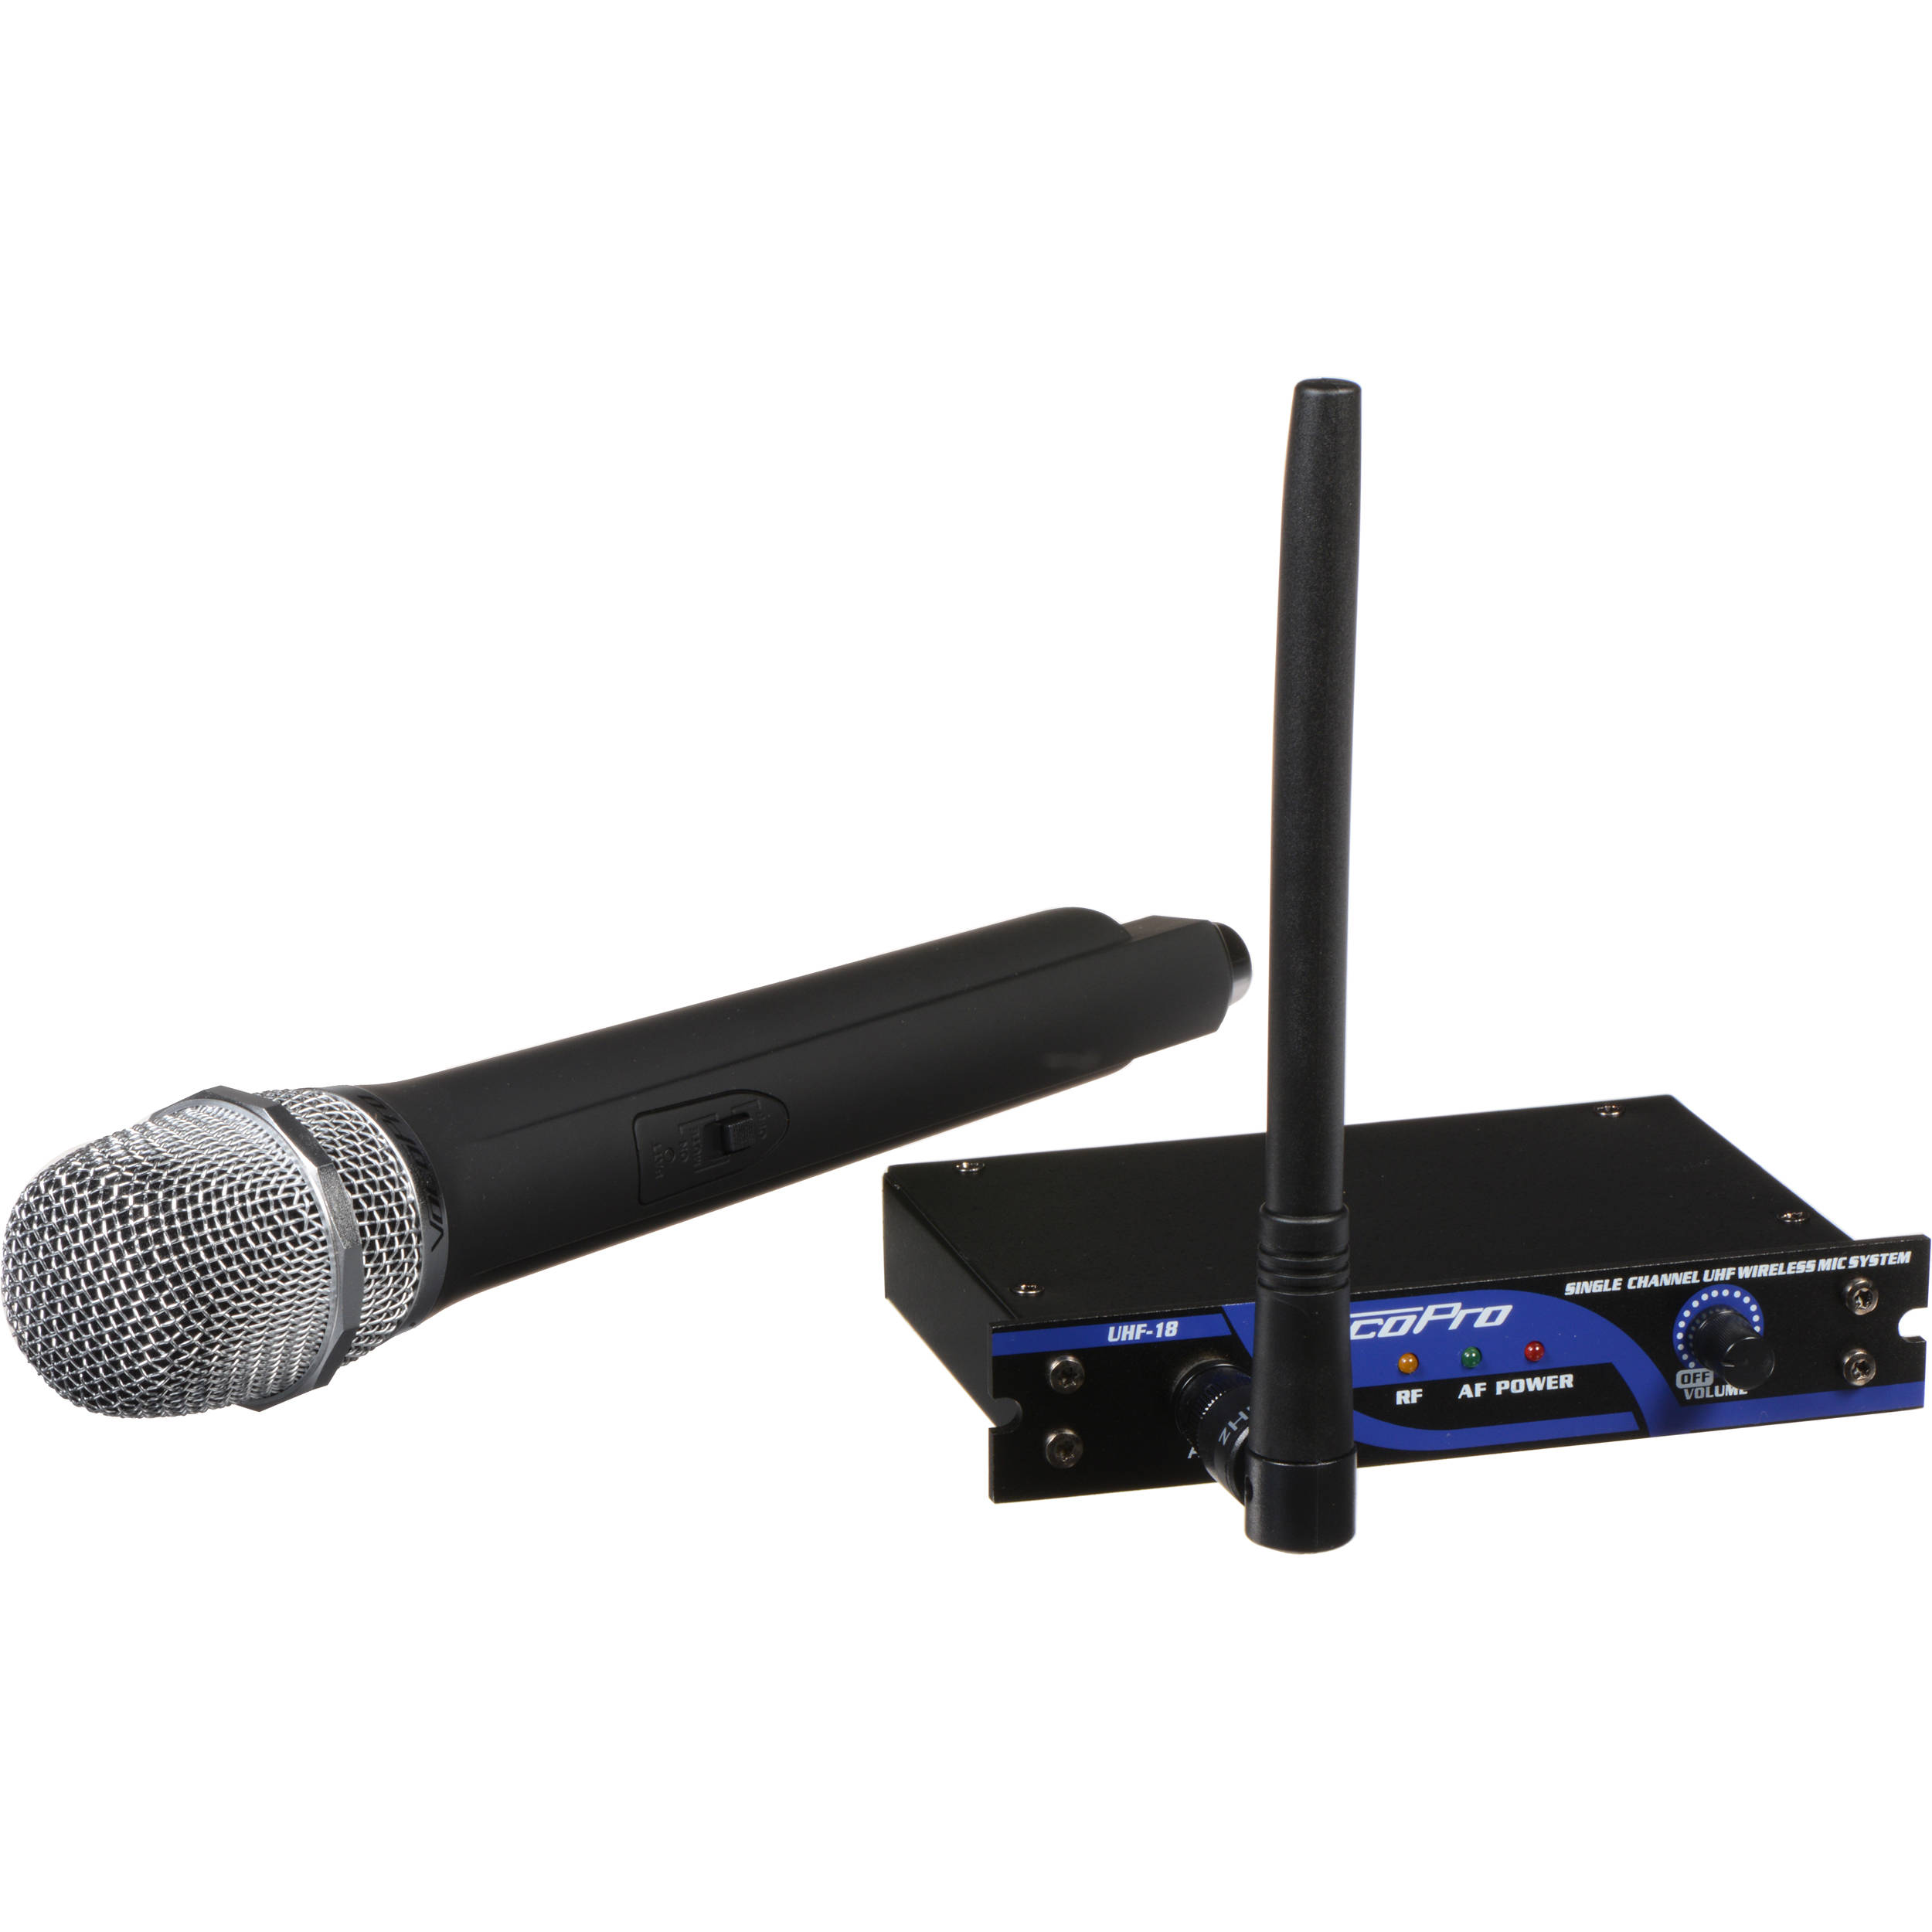 New Uhf Wireless Microphone Professional Head-wear Mic For Voice Amplifier Computer Refreshment Consumer Electronics